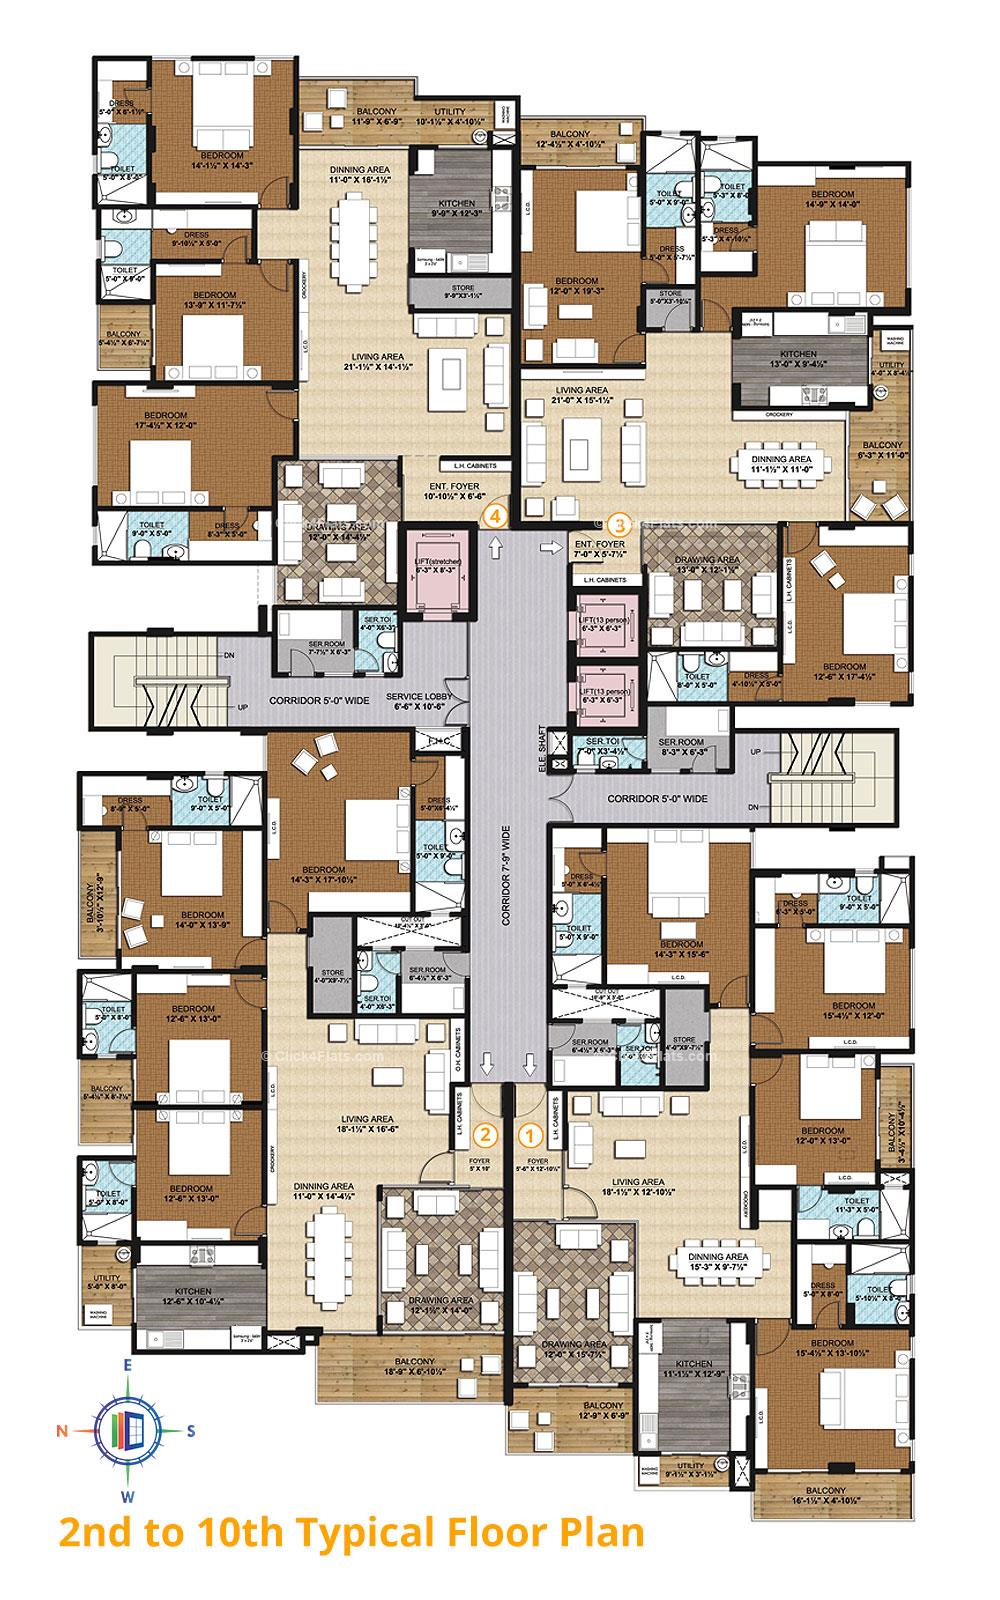 The Park Central Typical Floor Plan